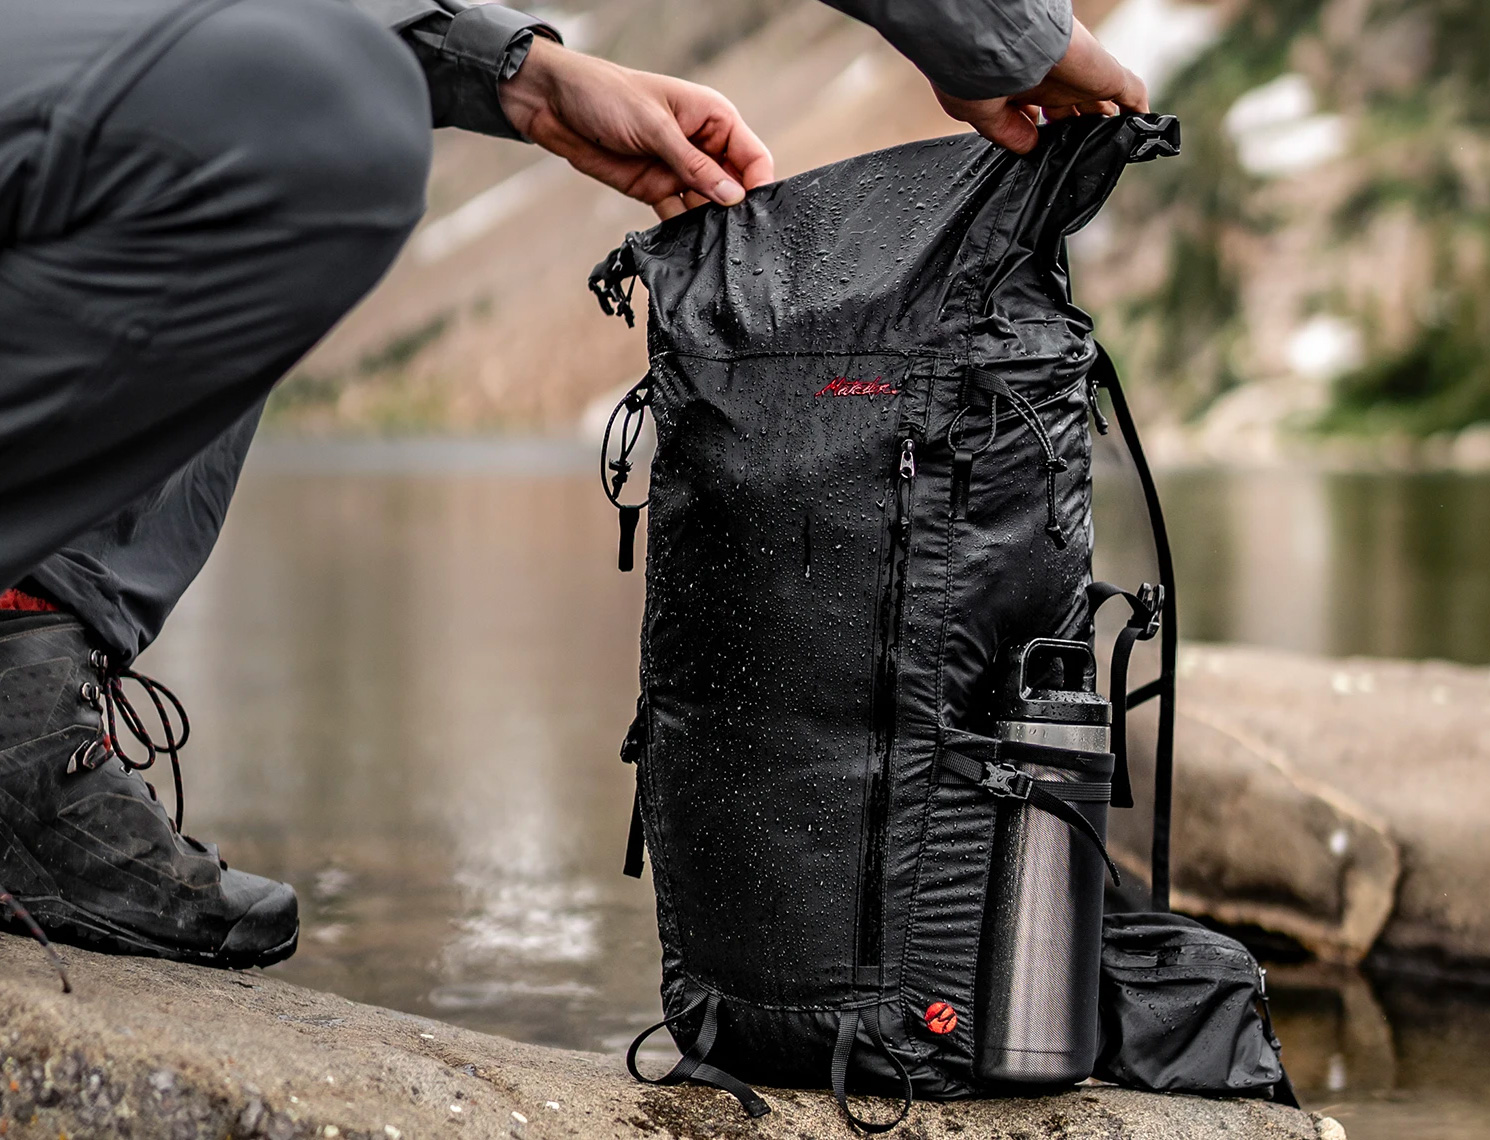 Hike Through Any Weather with Matador's Freerain32 at werd.com